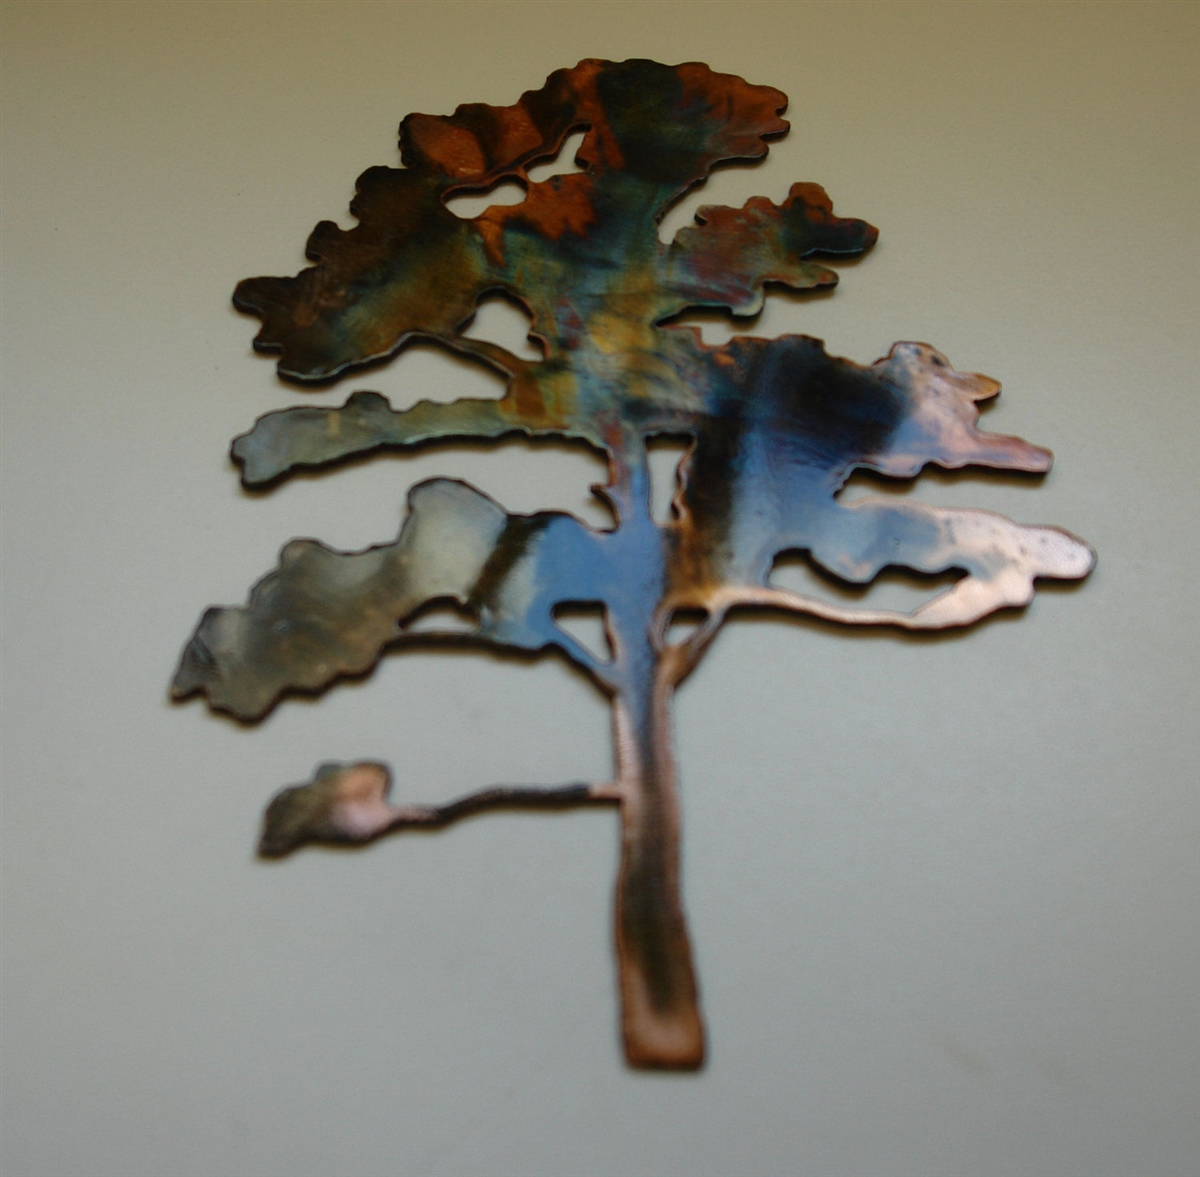 METAL OAK LEAVES 6  COPPER//BRONZE PLATED BY HGMW